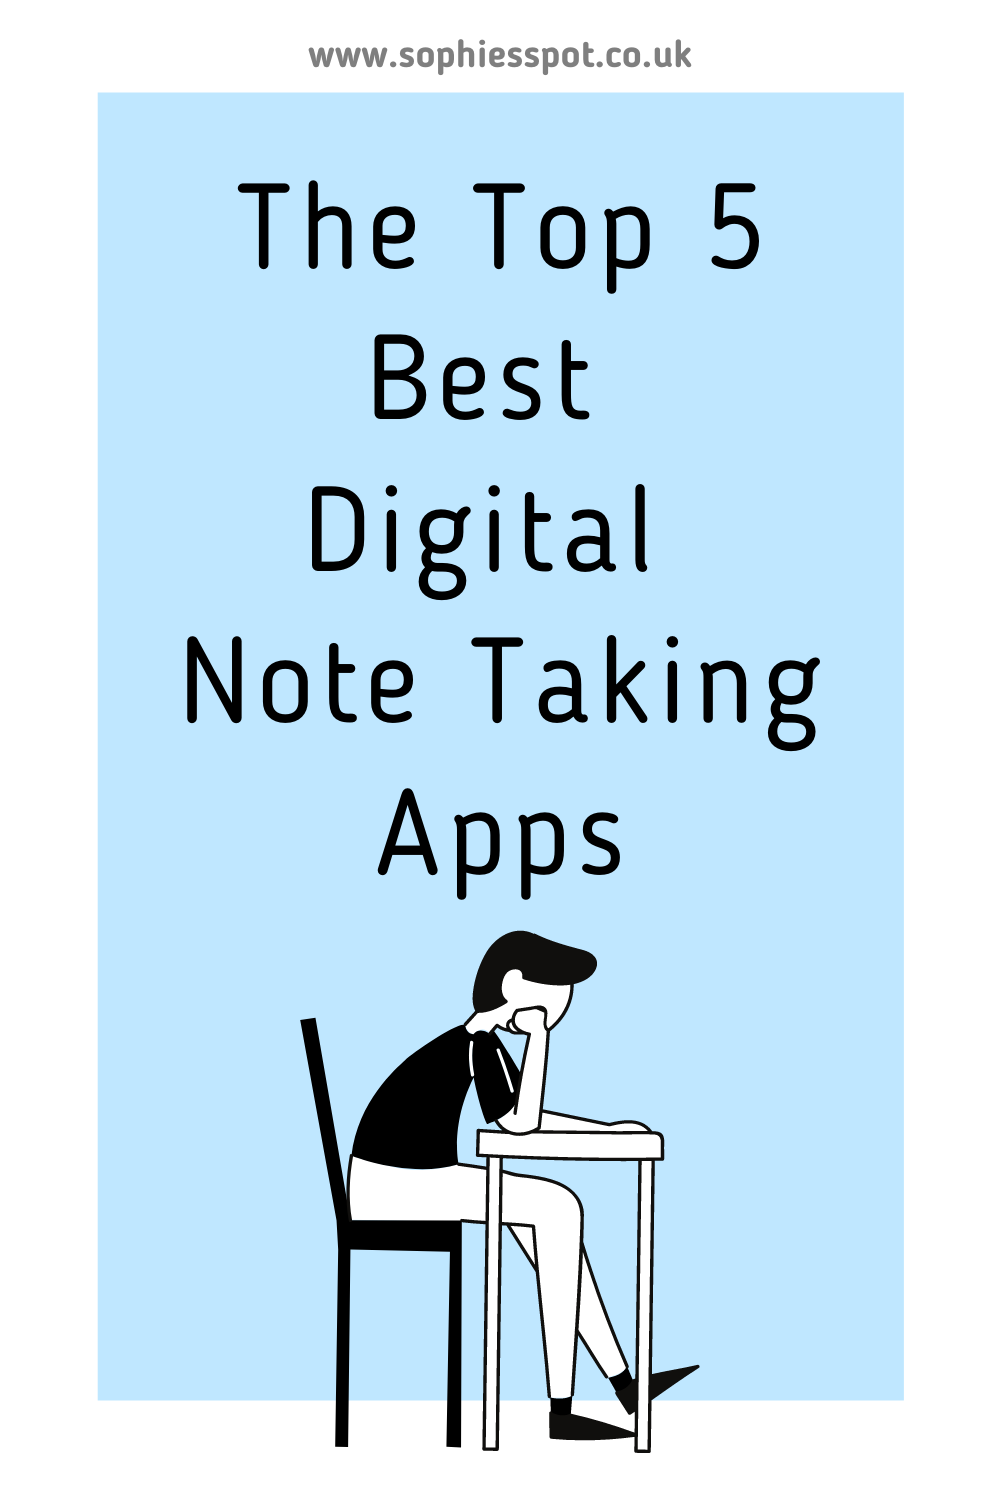 """""""the top five best digital note taking apps"""" with an illustration of someone studying below the wording"""